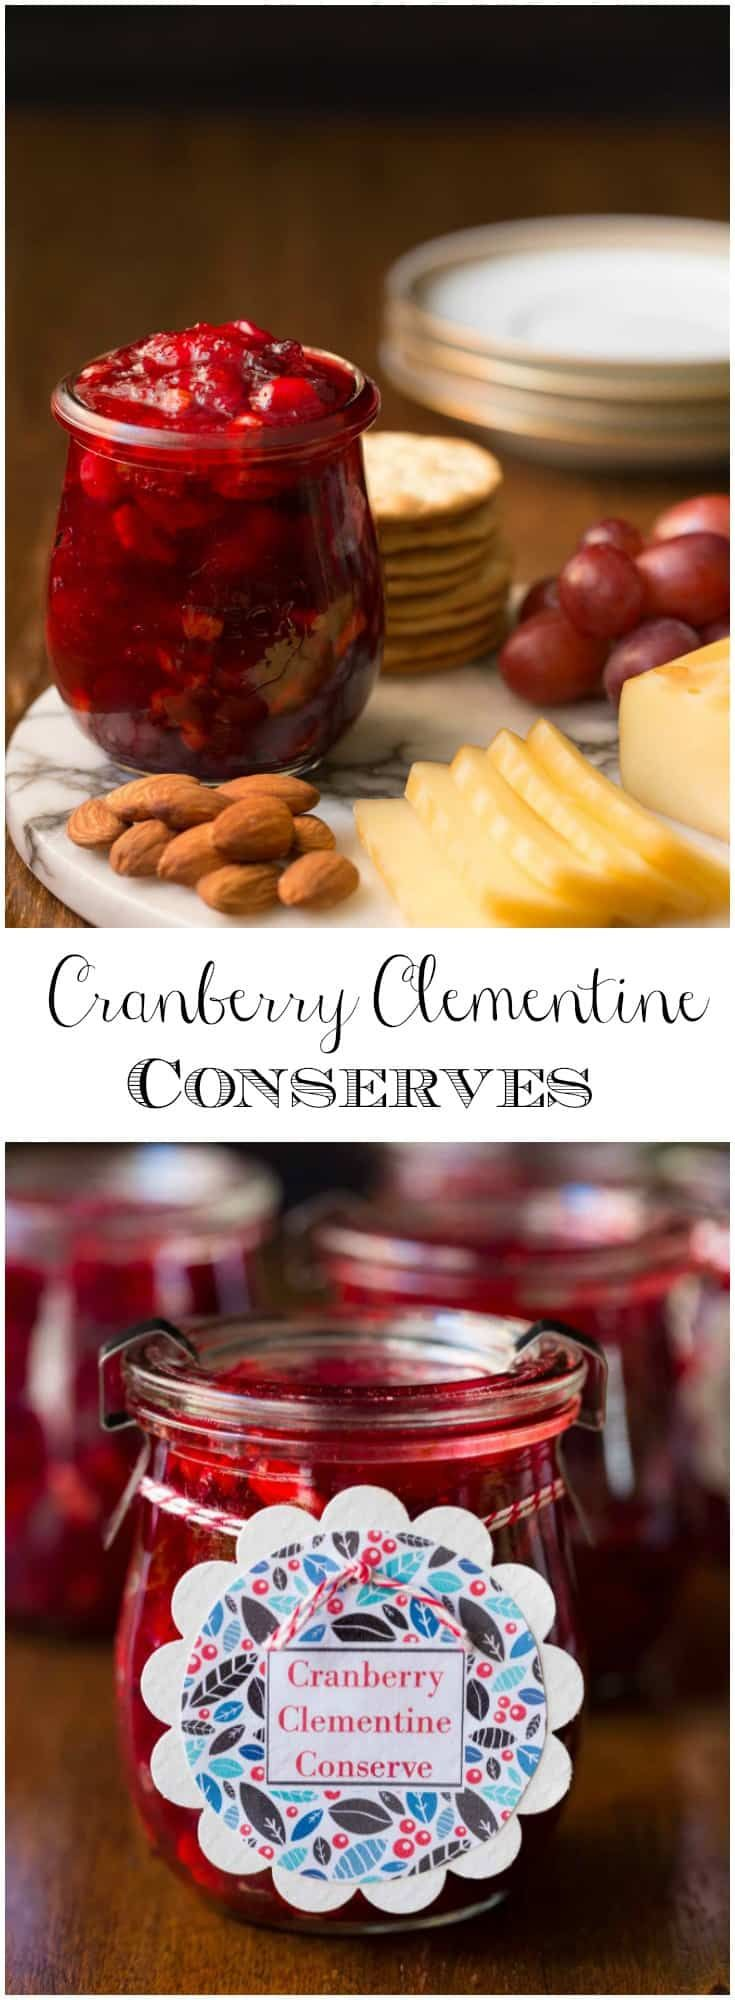 Keep a stash of these Cranberry Clementine Conserves handy for an easy and delicious appetizer. It's also fabulous for gift giving! #cranberry #clementine #conserve #giftsfromthekitchen #christmas